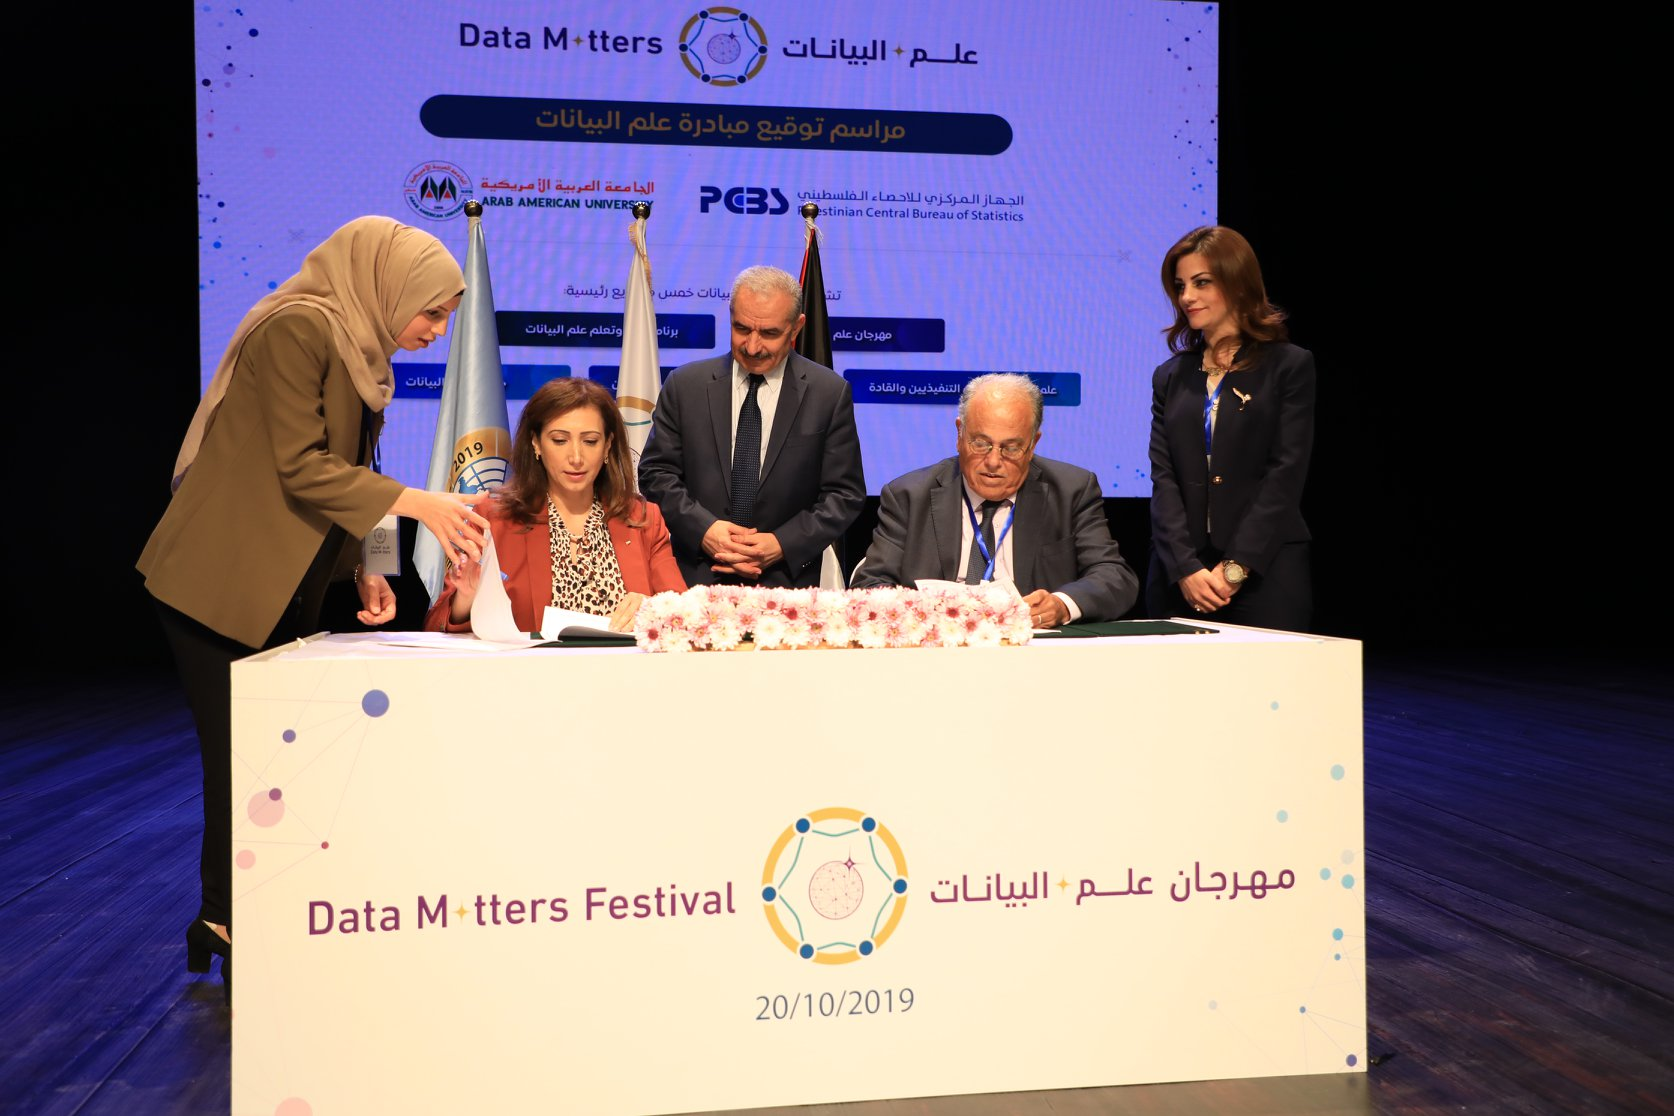 AAUP and PCBS Sign a Collaboration and Partnership Agreement During the Data Matters Festival